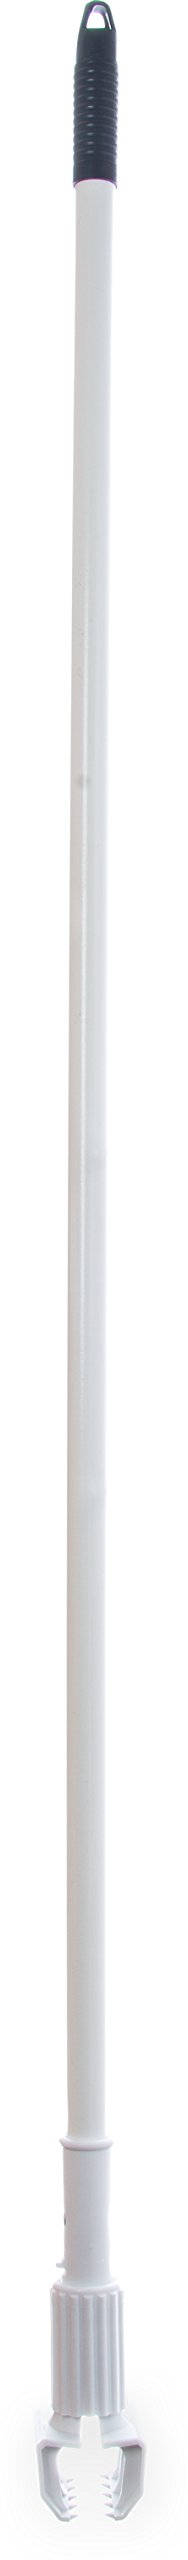 Carlisle 36947502 Jaw Style Mop Handle, 1'' H, 60'' L, 1'' W, Fiberglass, 60'', White (Pack of 12)